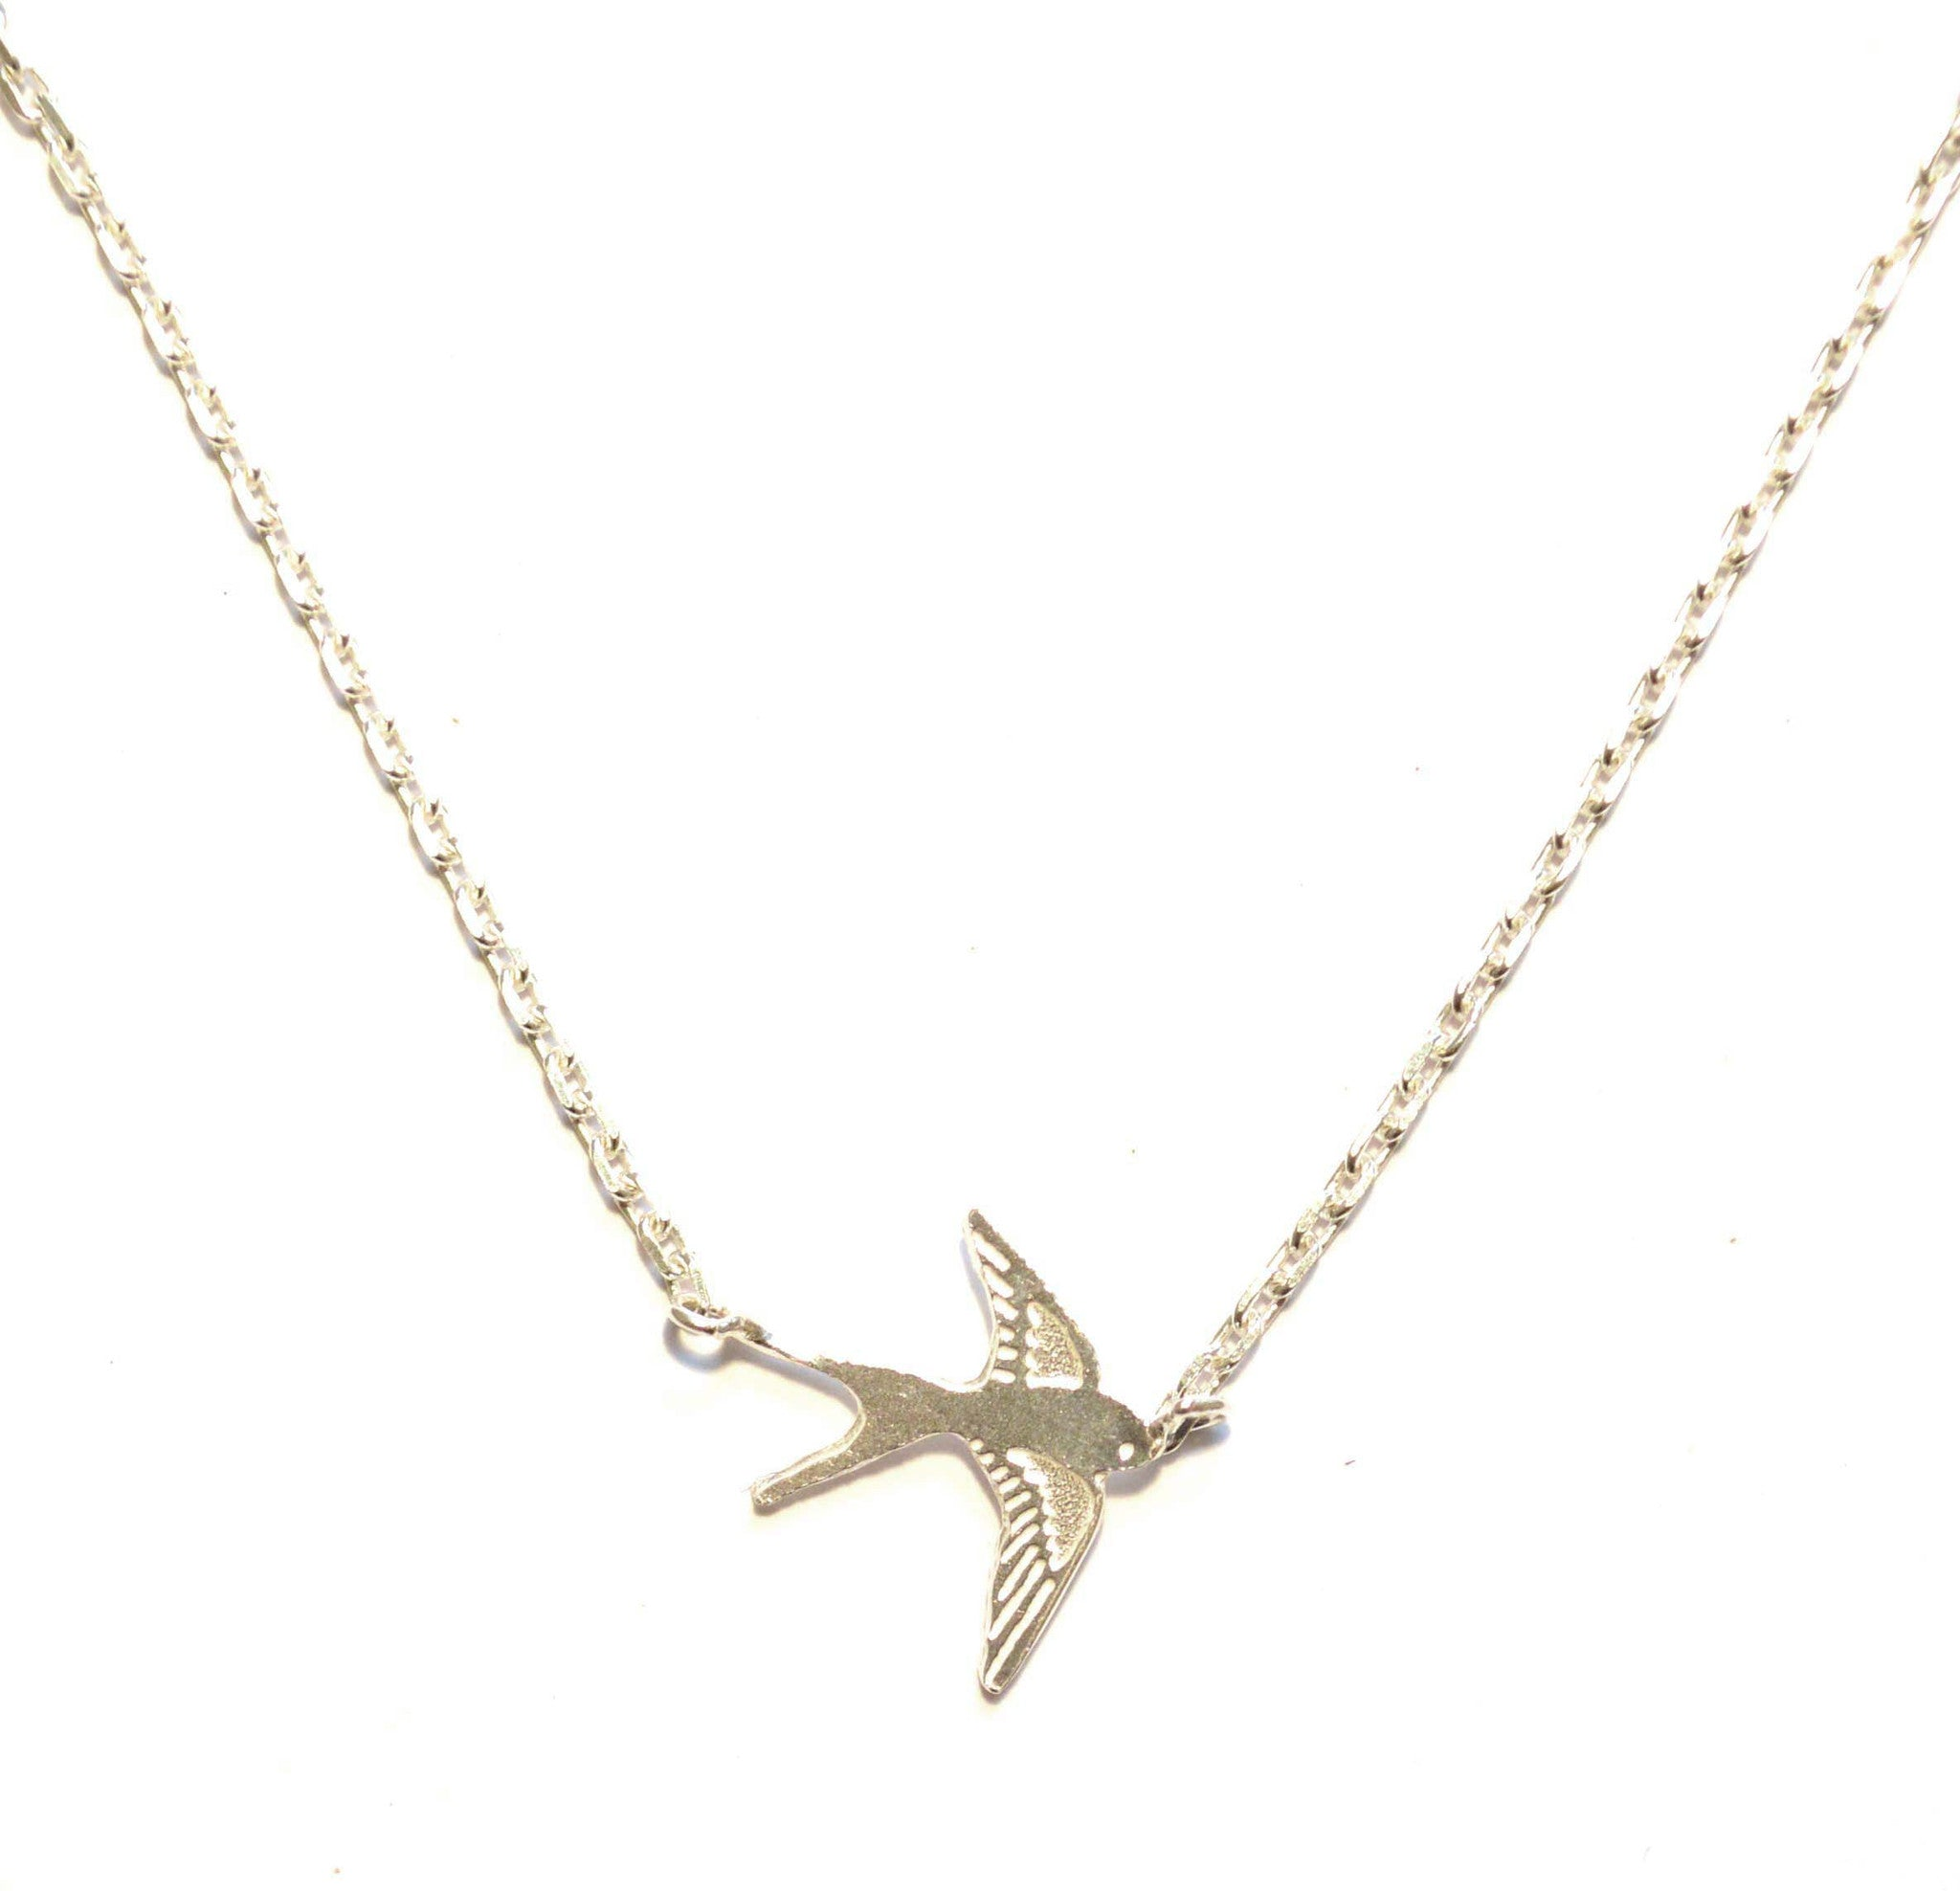 Swallow pendant buy online at monkey puzzle jewellery swallow pendant amanda coleman monkey puzzle jewellery mozeypictures Gallery